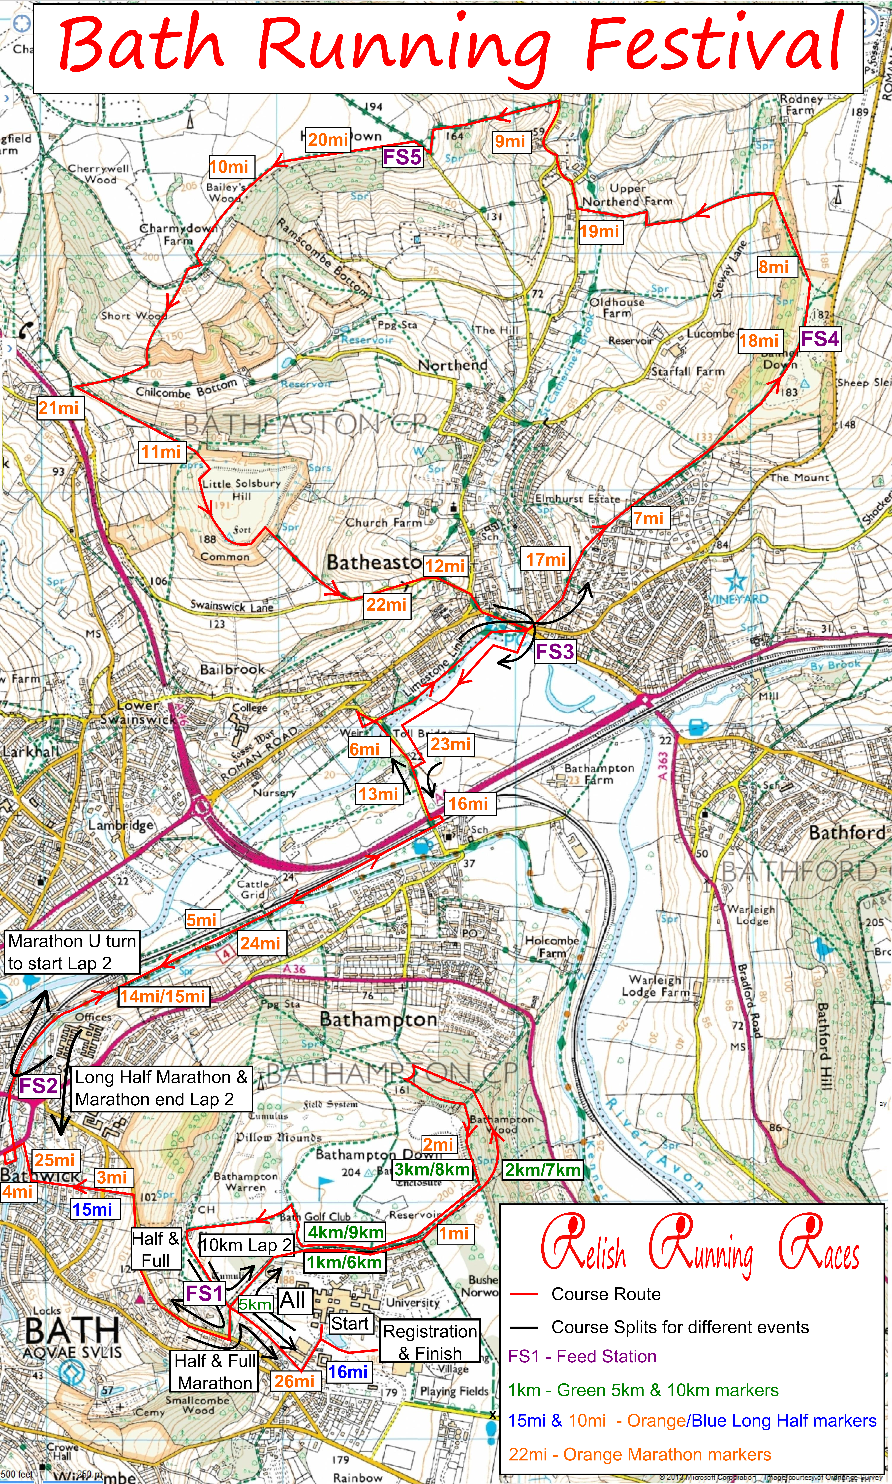 Bath Run Festival Course Map